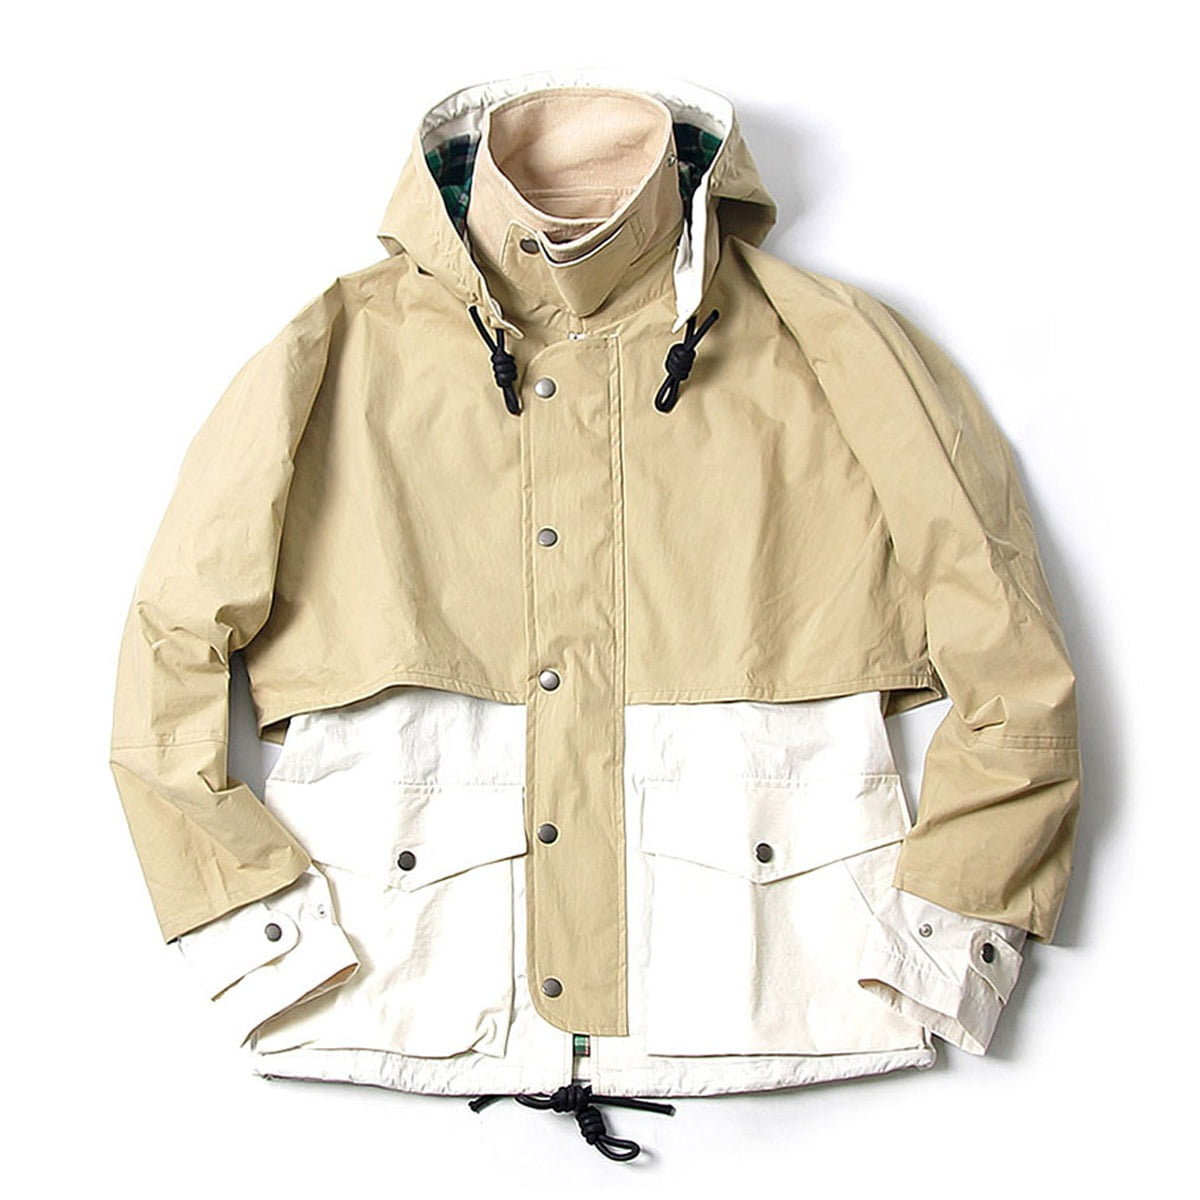 [BEHEAVYER] BHR MULTI JACKET 'WHITE'